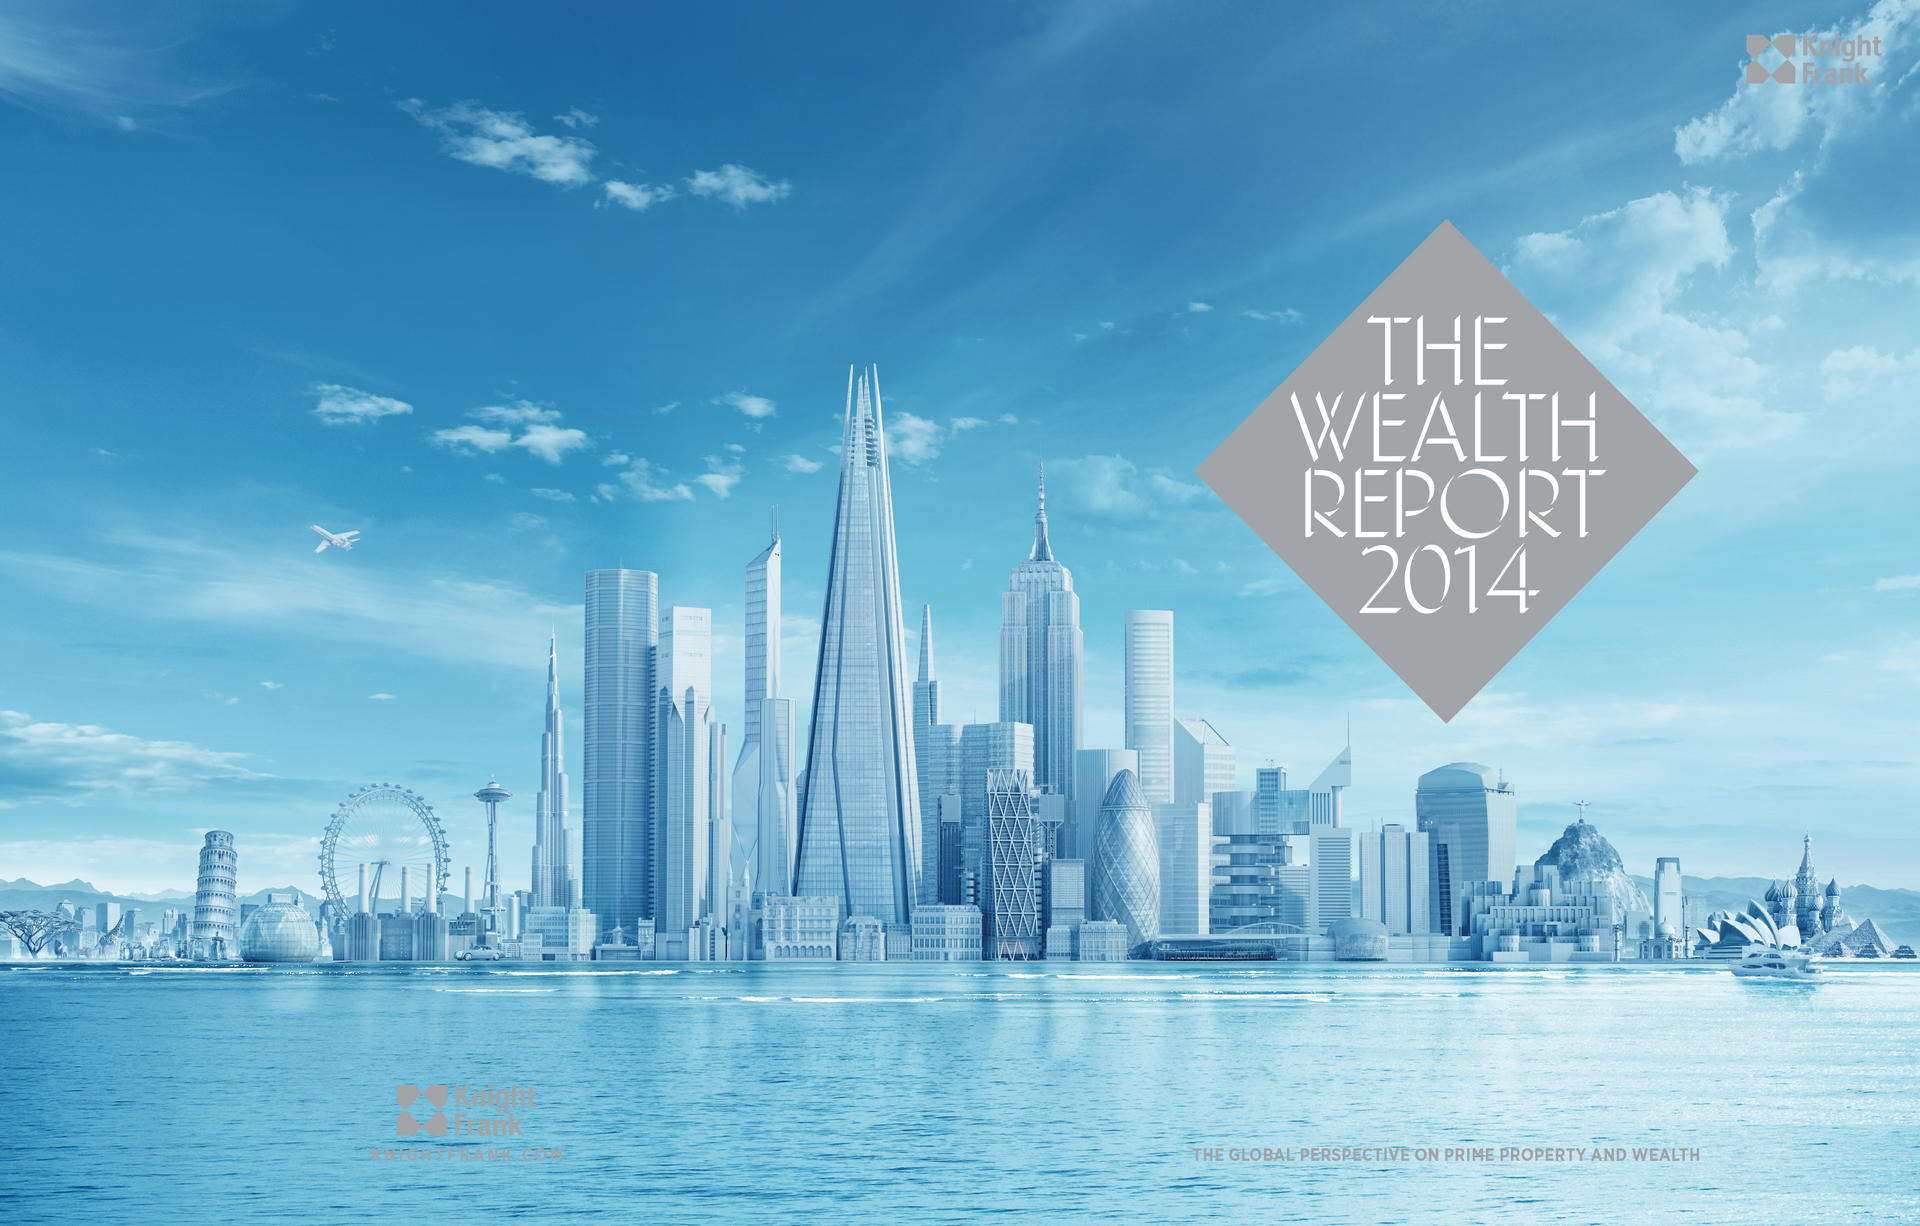 Wealth Report cover spread